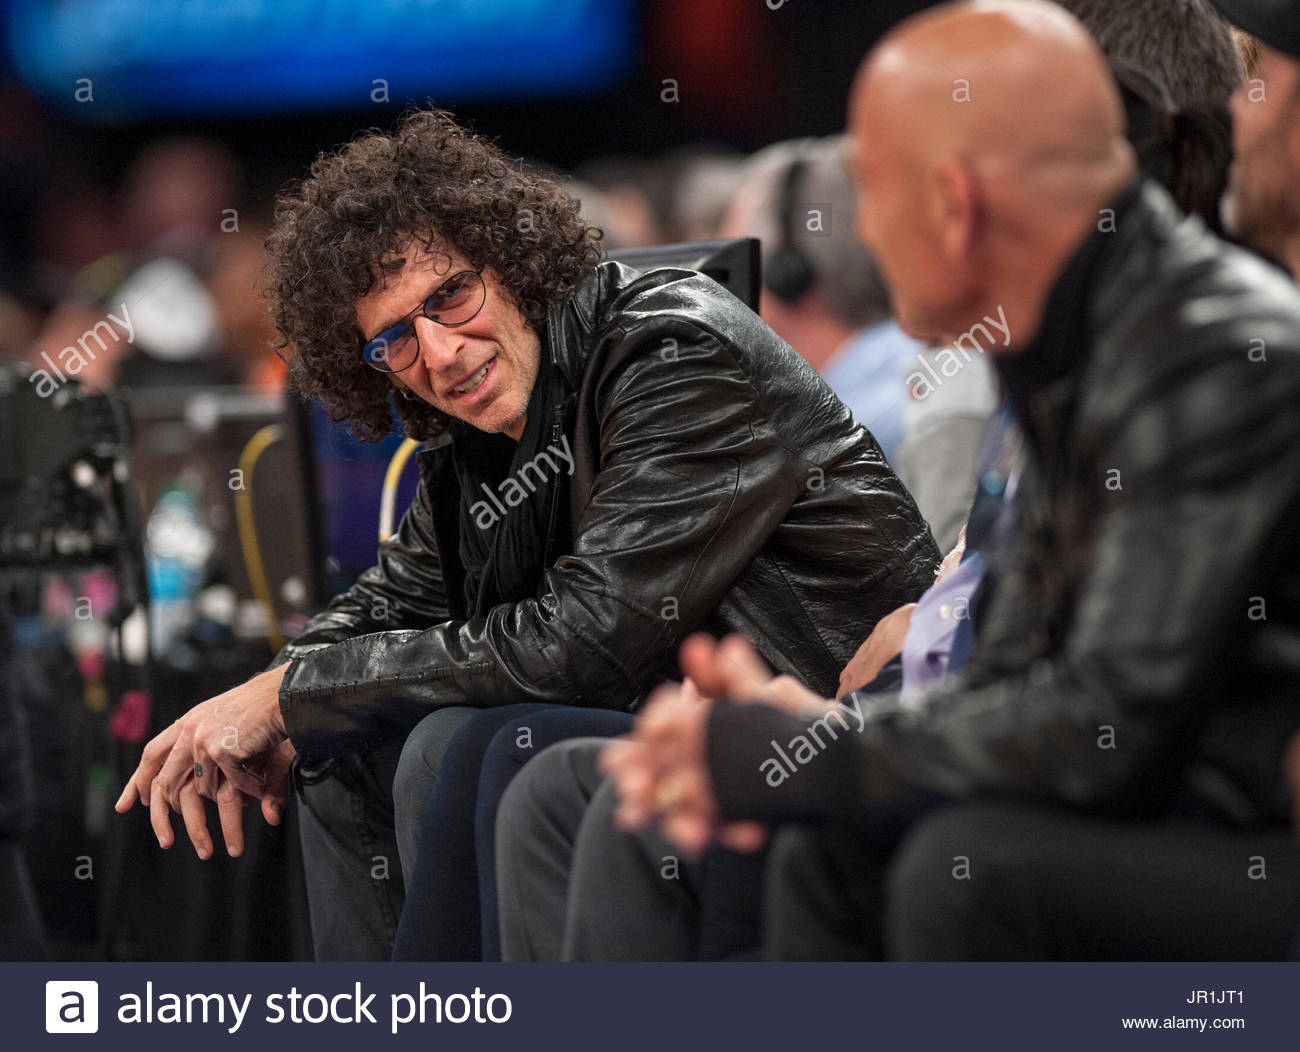 Discussion on this topic: Howard Stern Makes His Debut on Americas , howard-stern-makes-his-debut-on-americas/